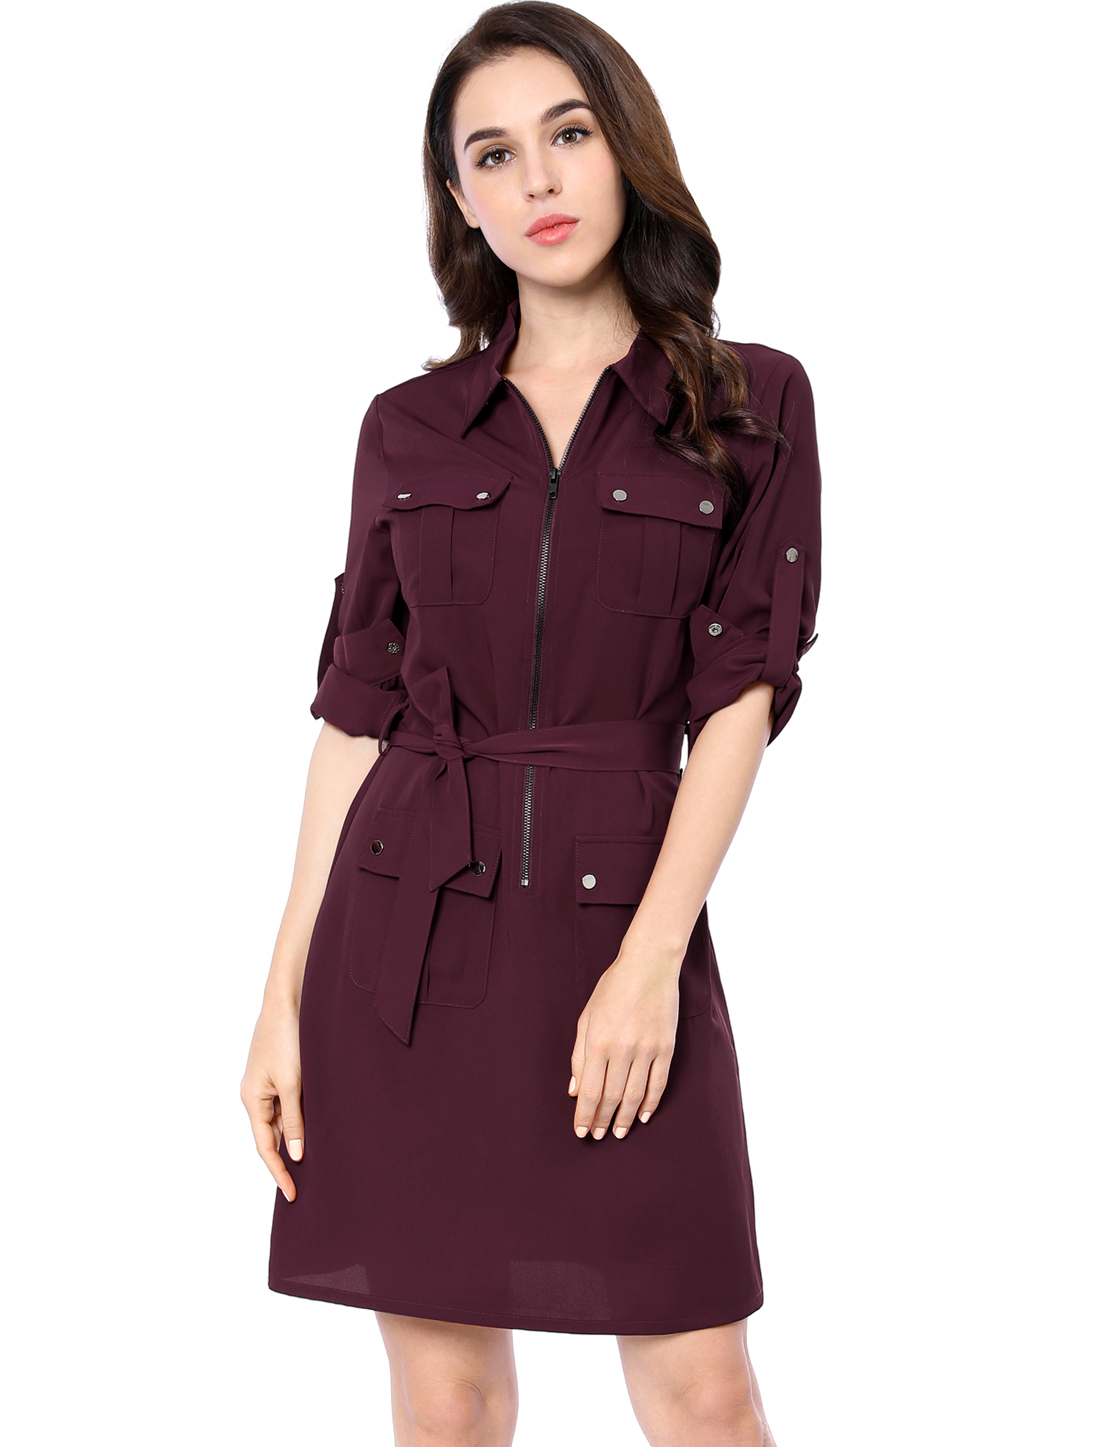 Women Roll Up Sleeves Multi-Pocket Above Knee Belted Shirt Dress Red L